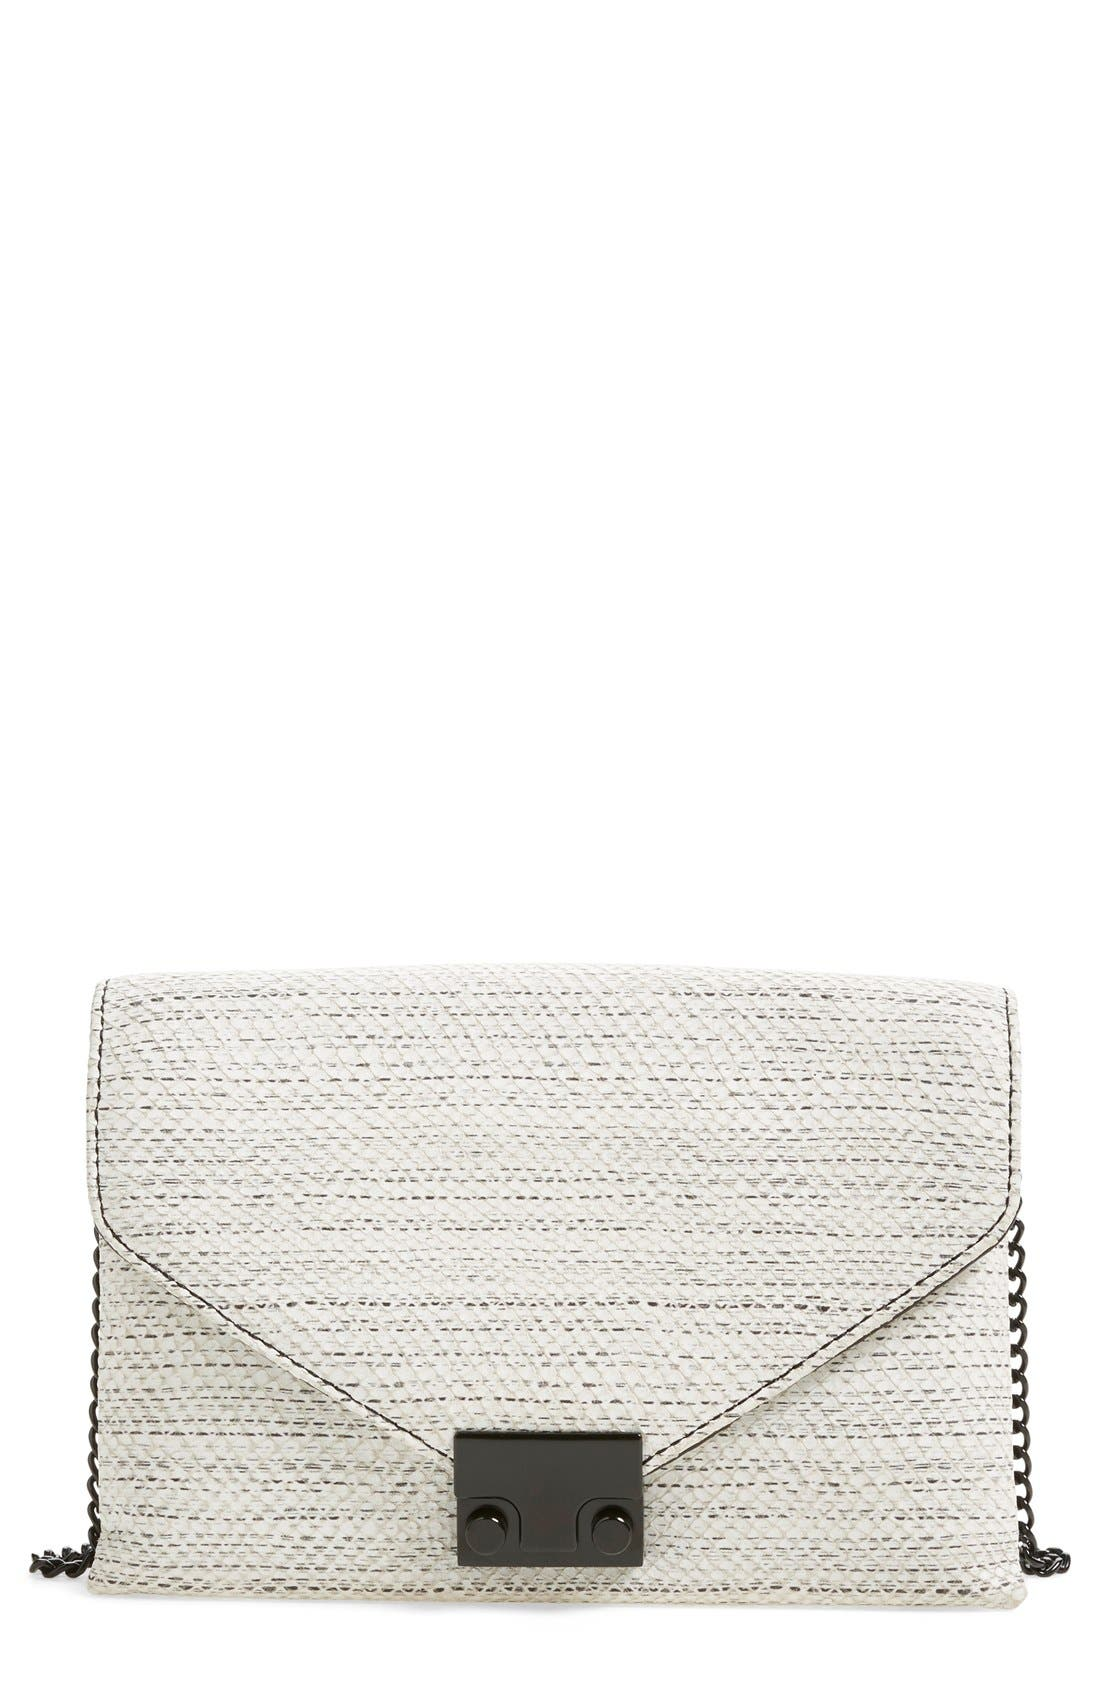 Alternate Image 1 Selected - Loeffler Randall 'Junior Lock' Leather Envelope Clutch